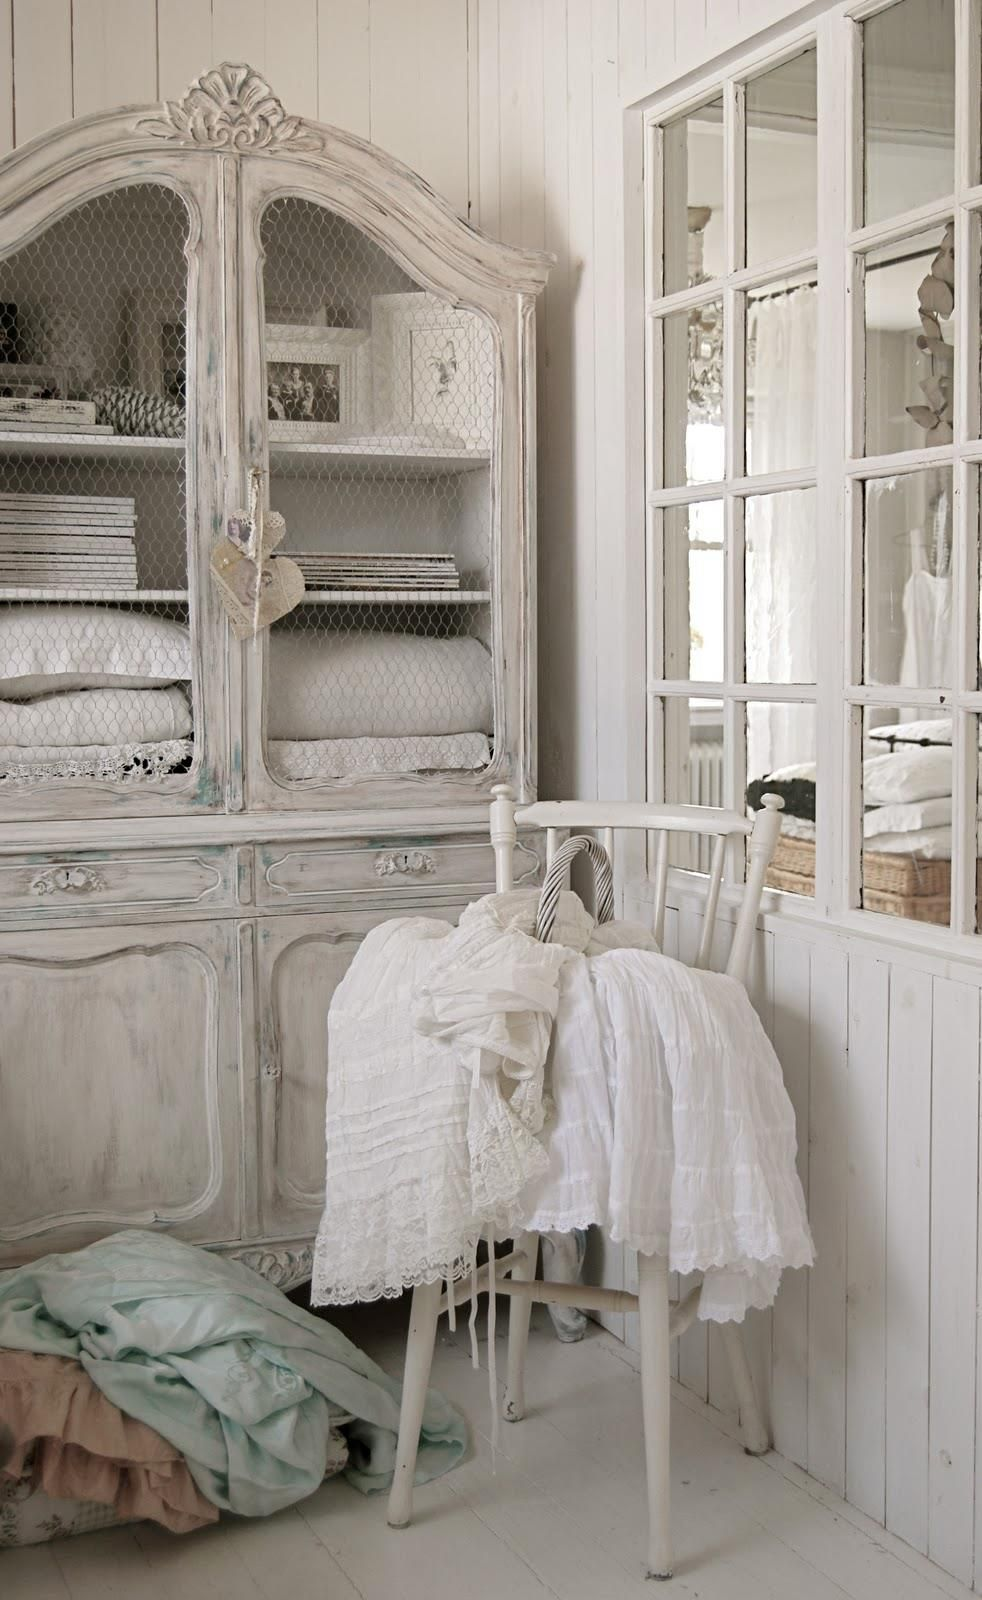 Muebles White And Vintage Pinterest Shabby Vintage And Armoires # Bonjour Muebles